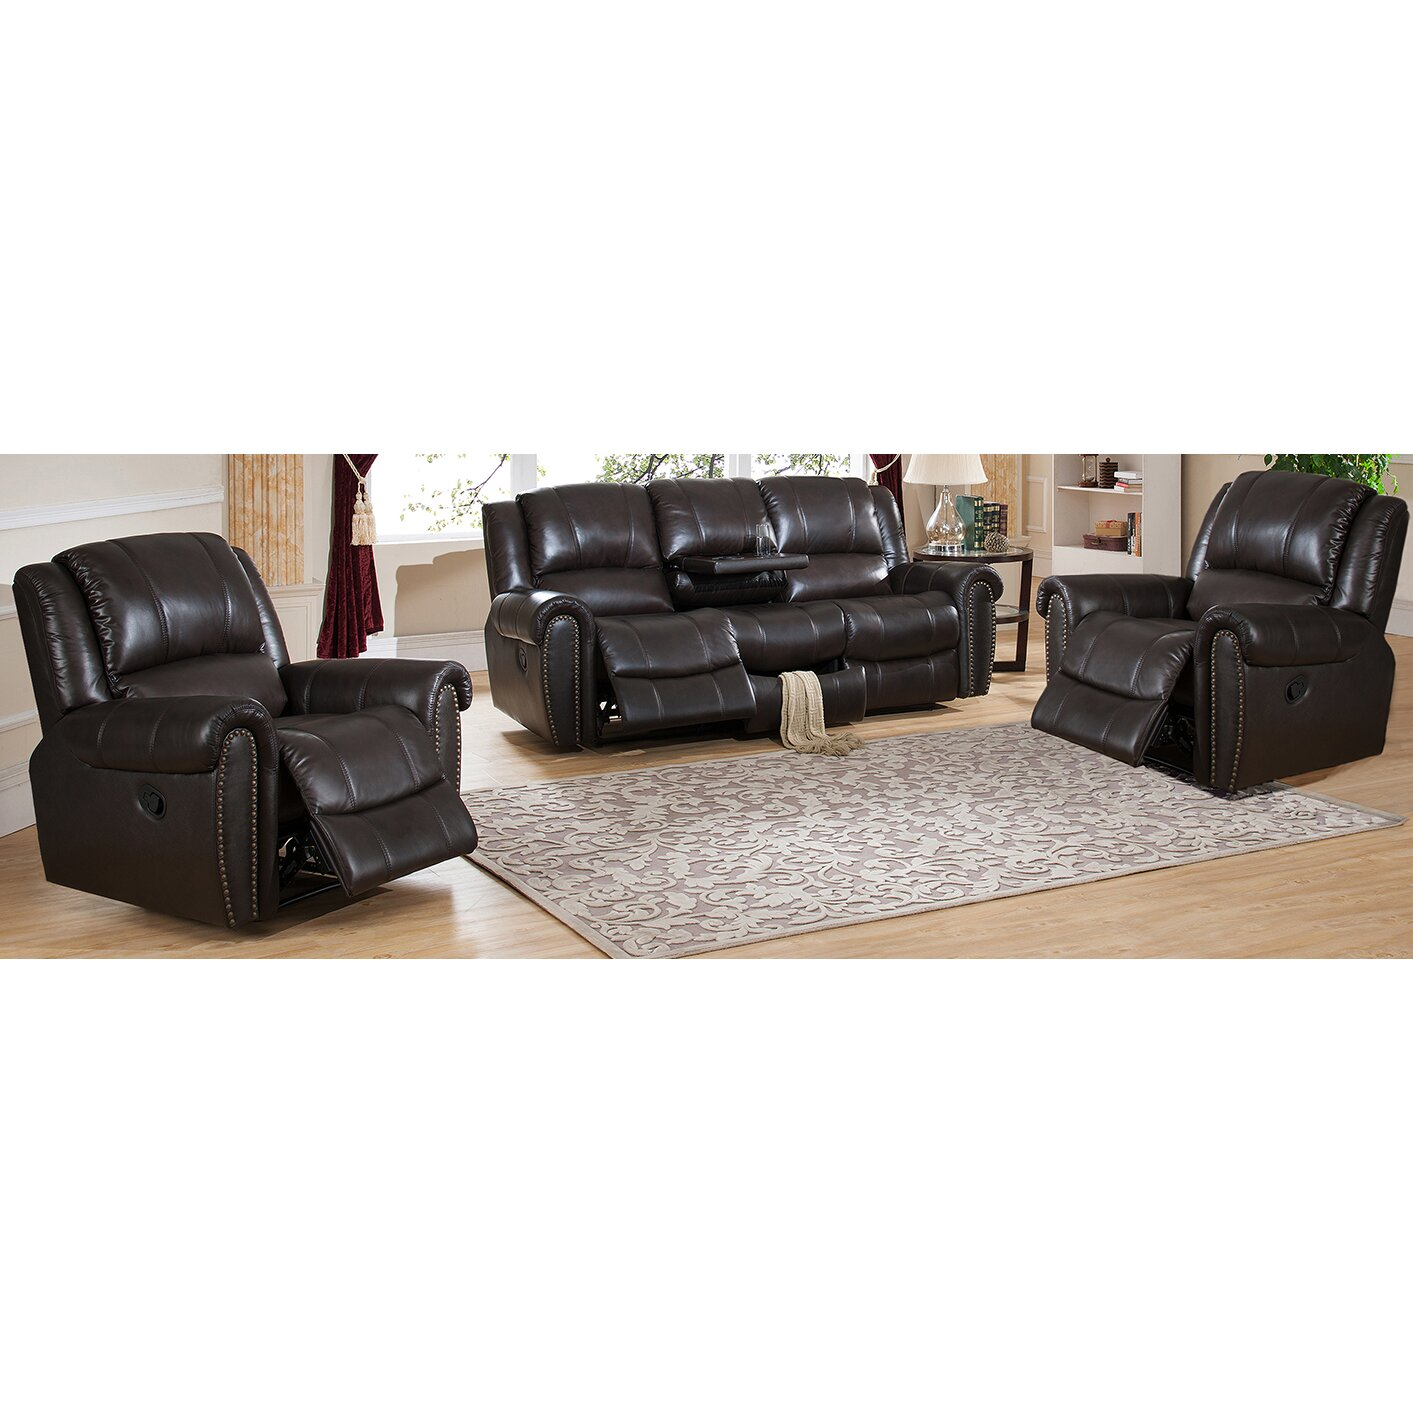 Leather Reclining Living Room Sets Amax Charlotte 3 Piece Leather Recliner Living Room Set Wayfair